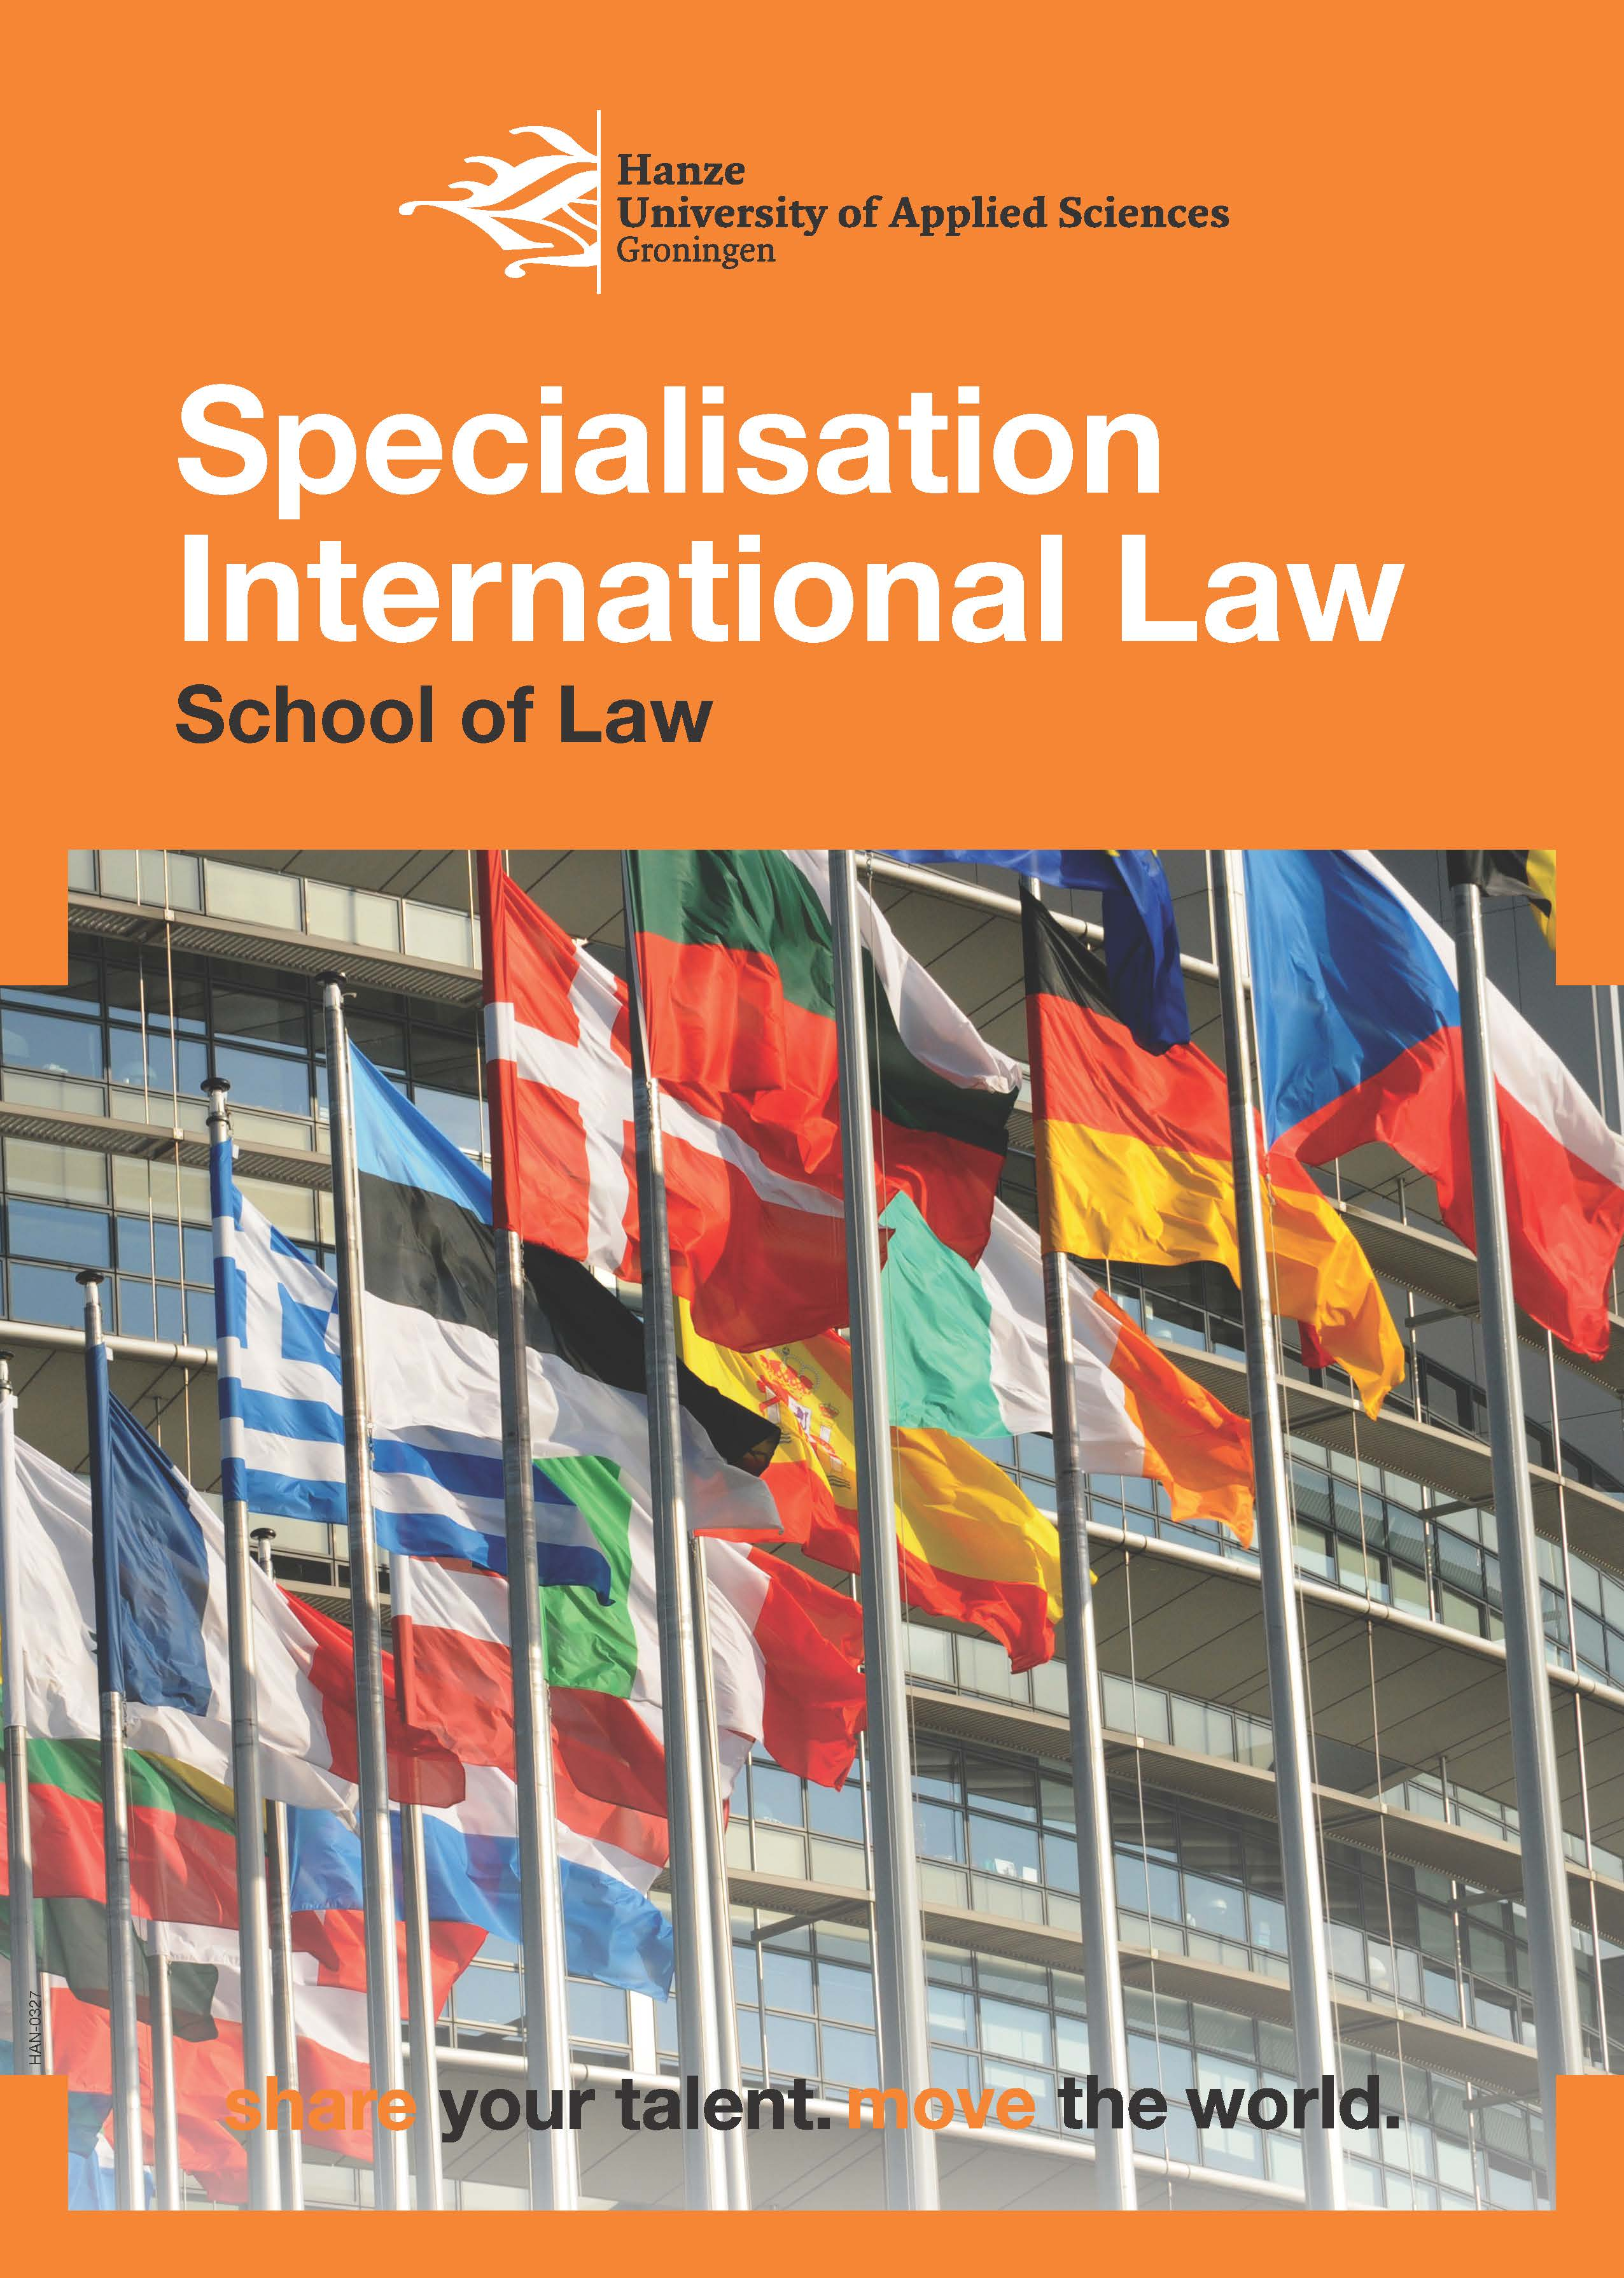 international law ibms1 hanze This work relates to choice of law rules in conflict of laws as regards property with a special emphasis on the case of re  international law ibms1 hanze essay.